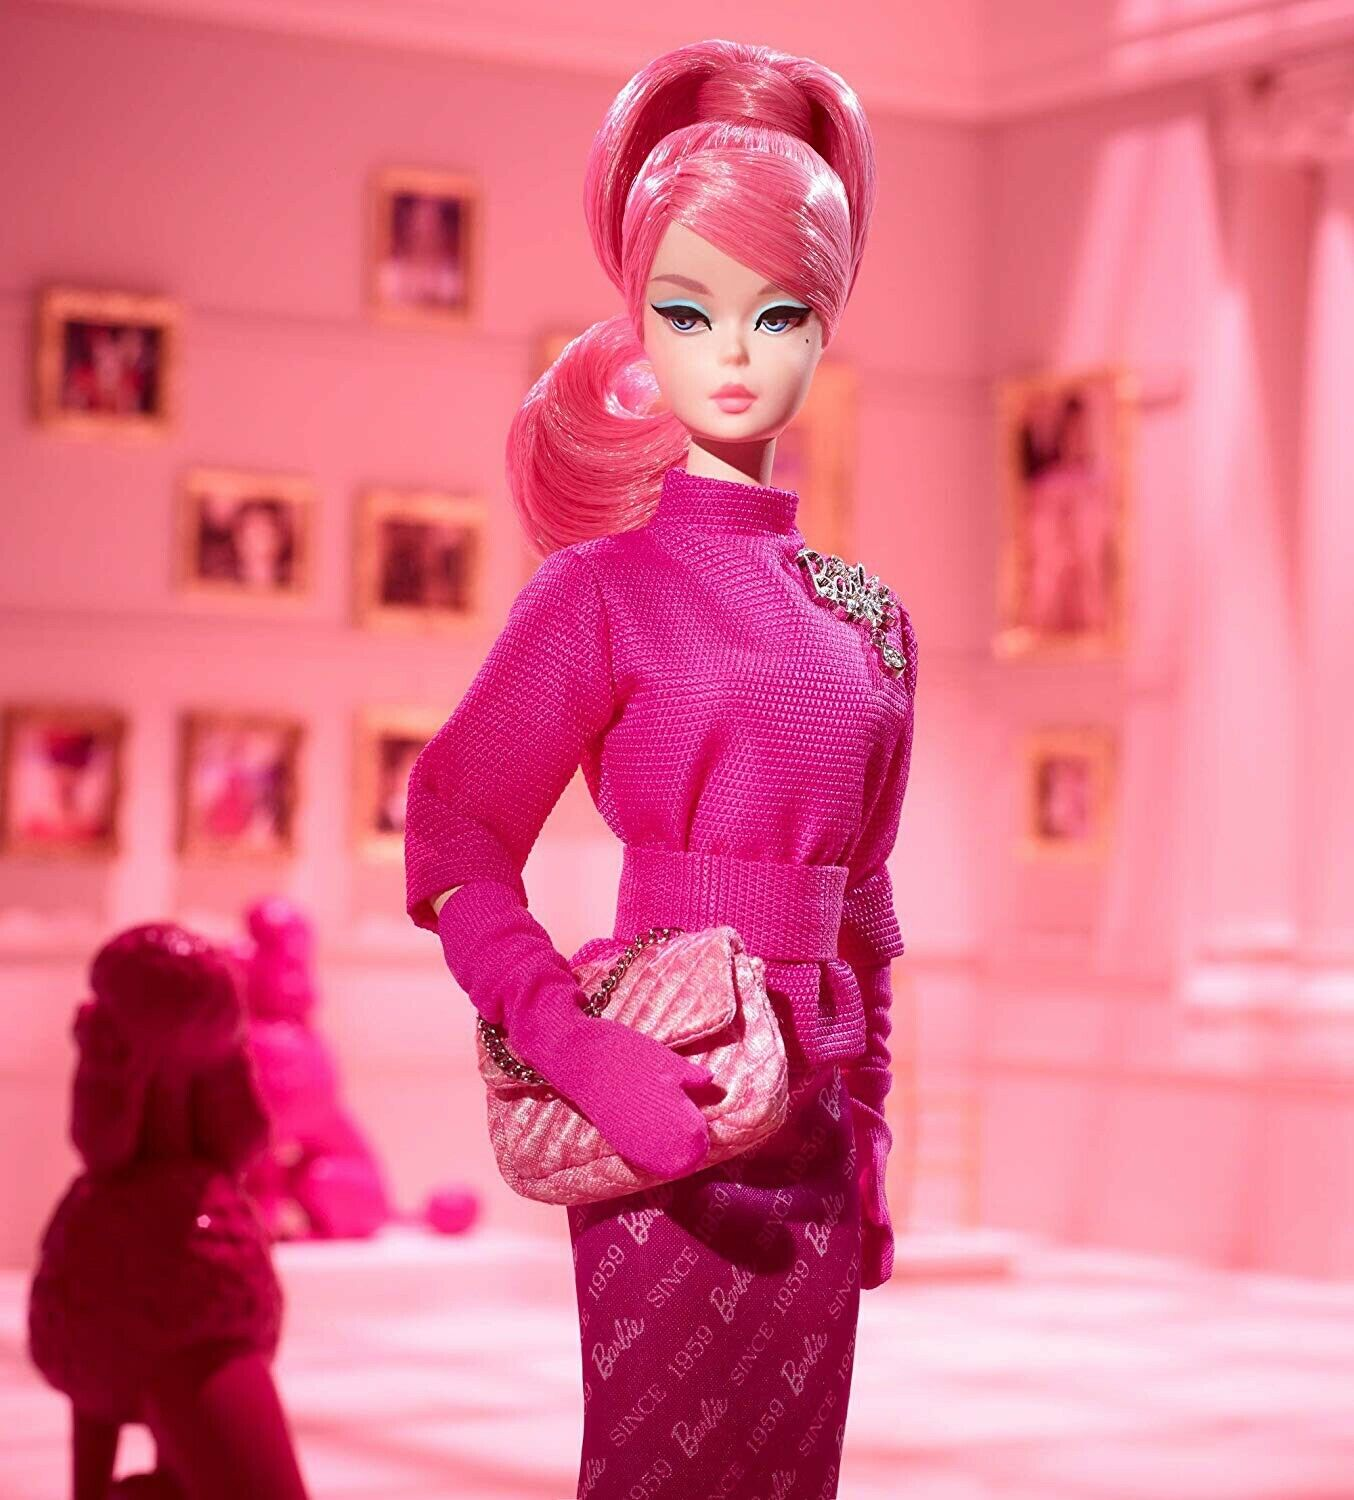 Barbie Proudly rosado Doll, 60th Anniversary